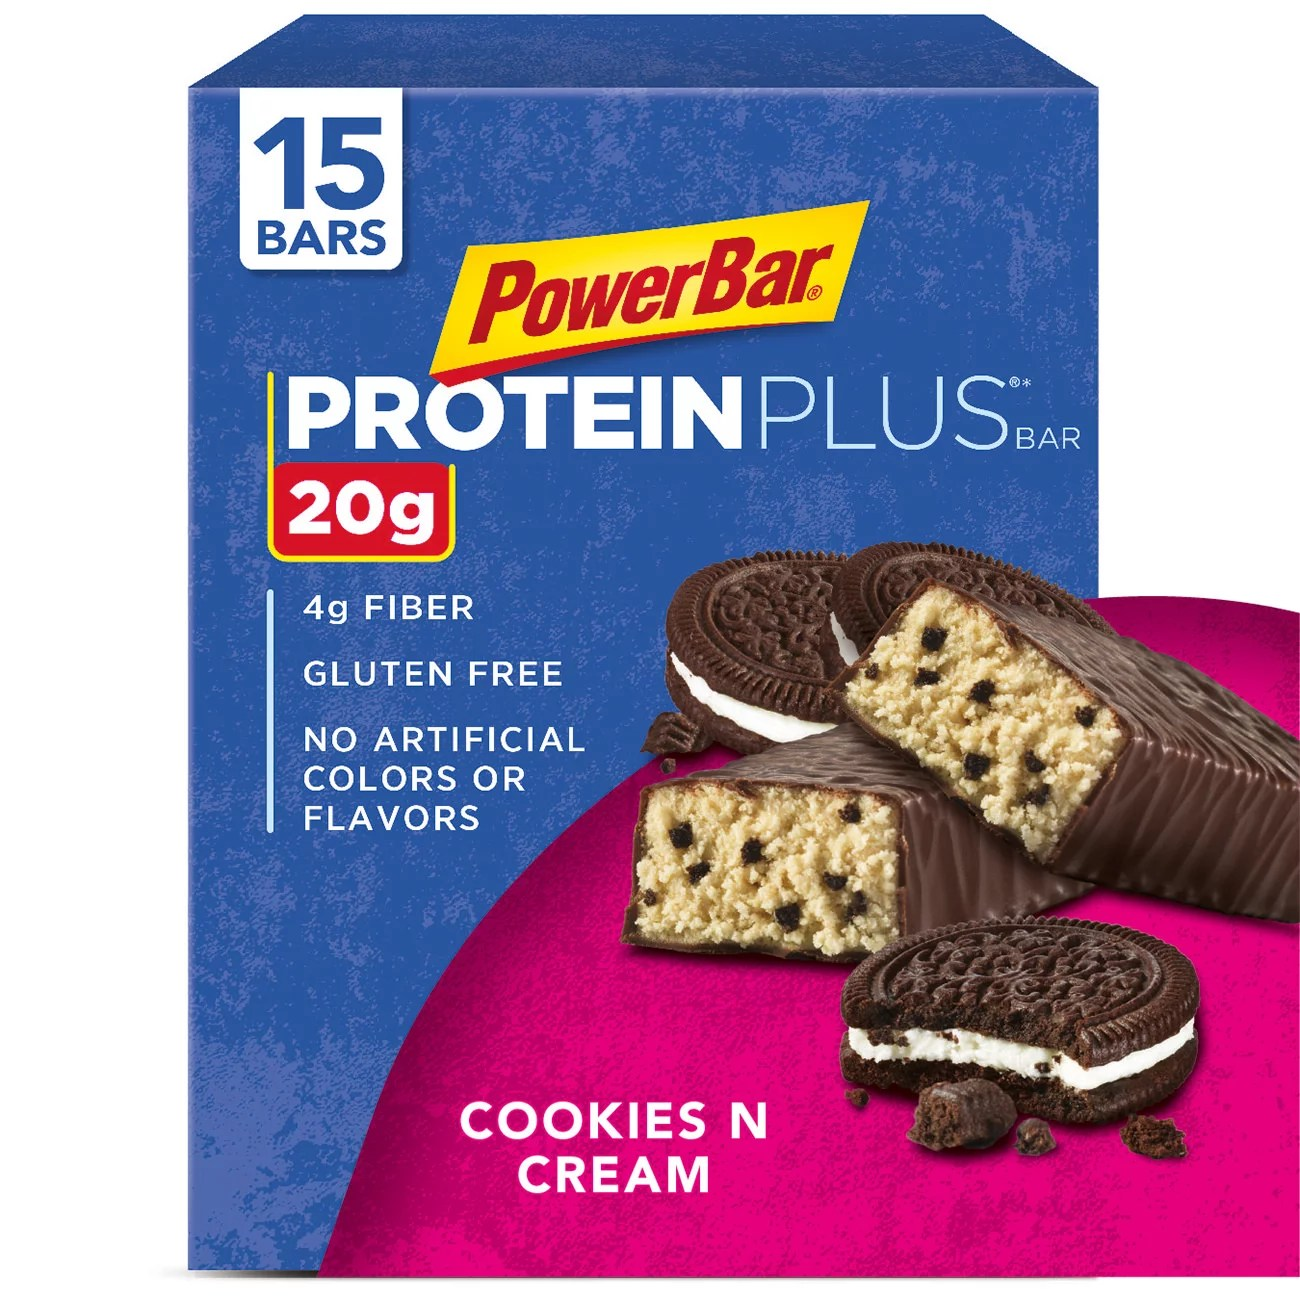 Küchen In U Form Bilder Powerbar Protein Plus Bar Cookies Cream 20g Protein 15 Ct Walmart